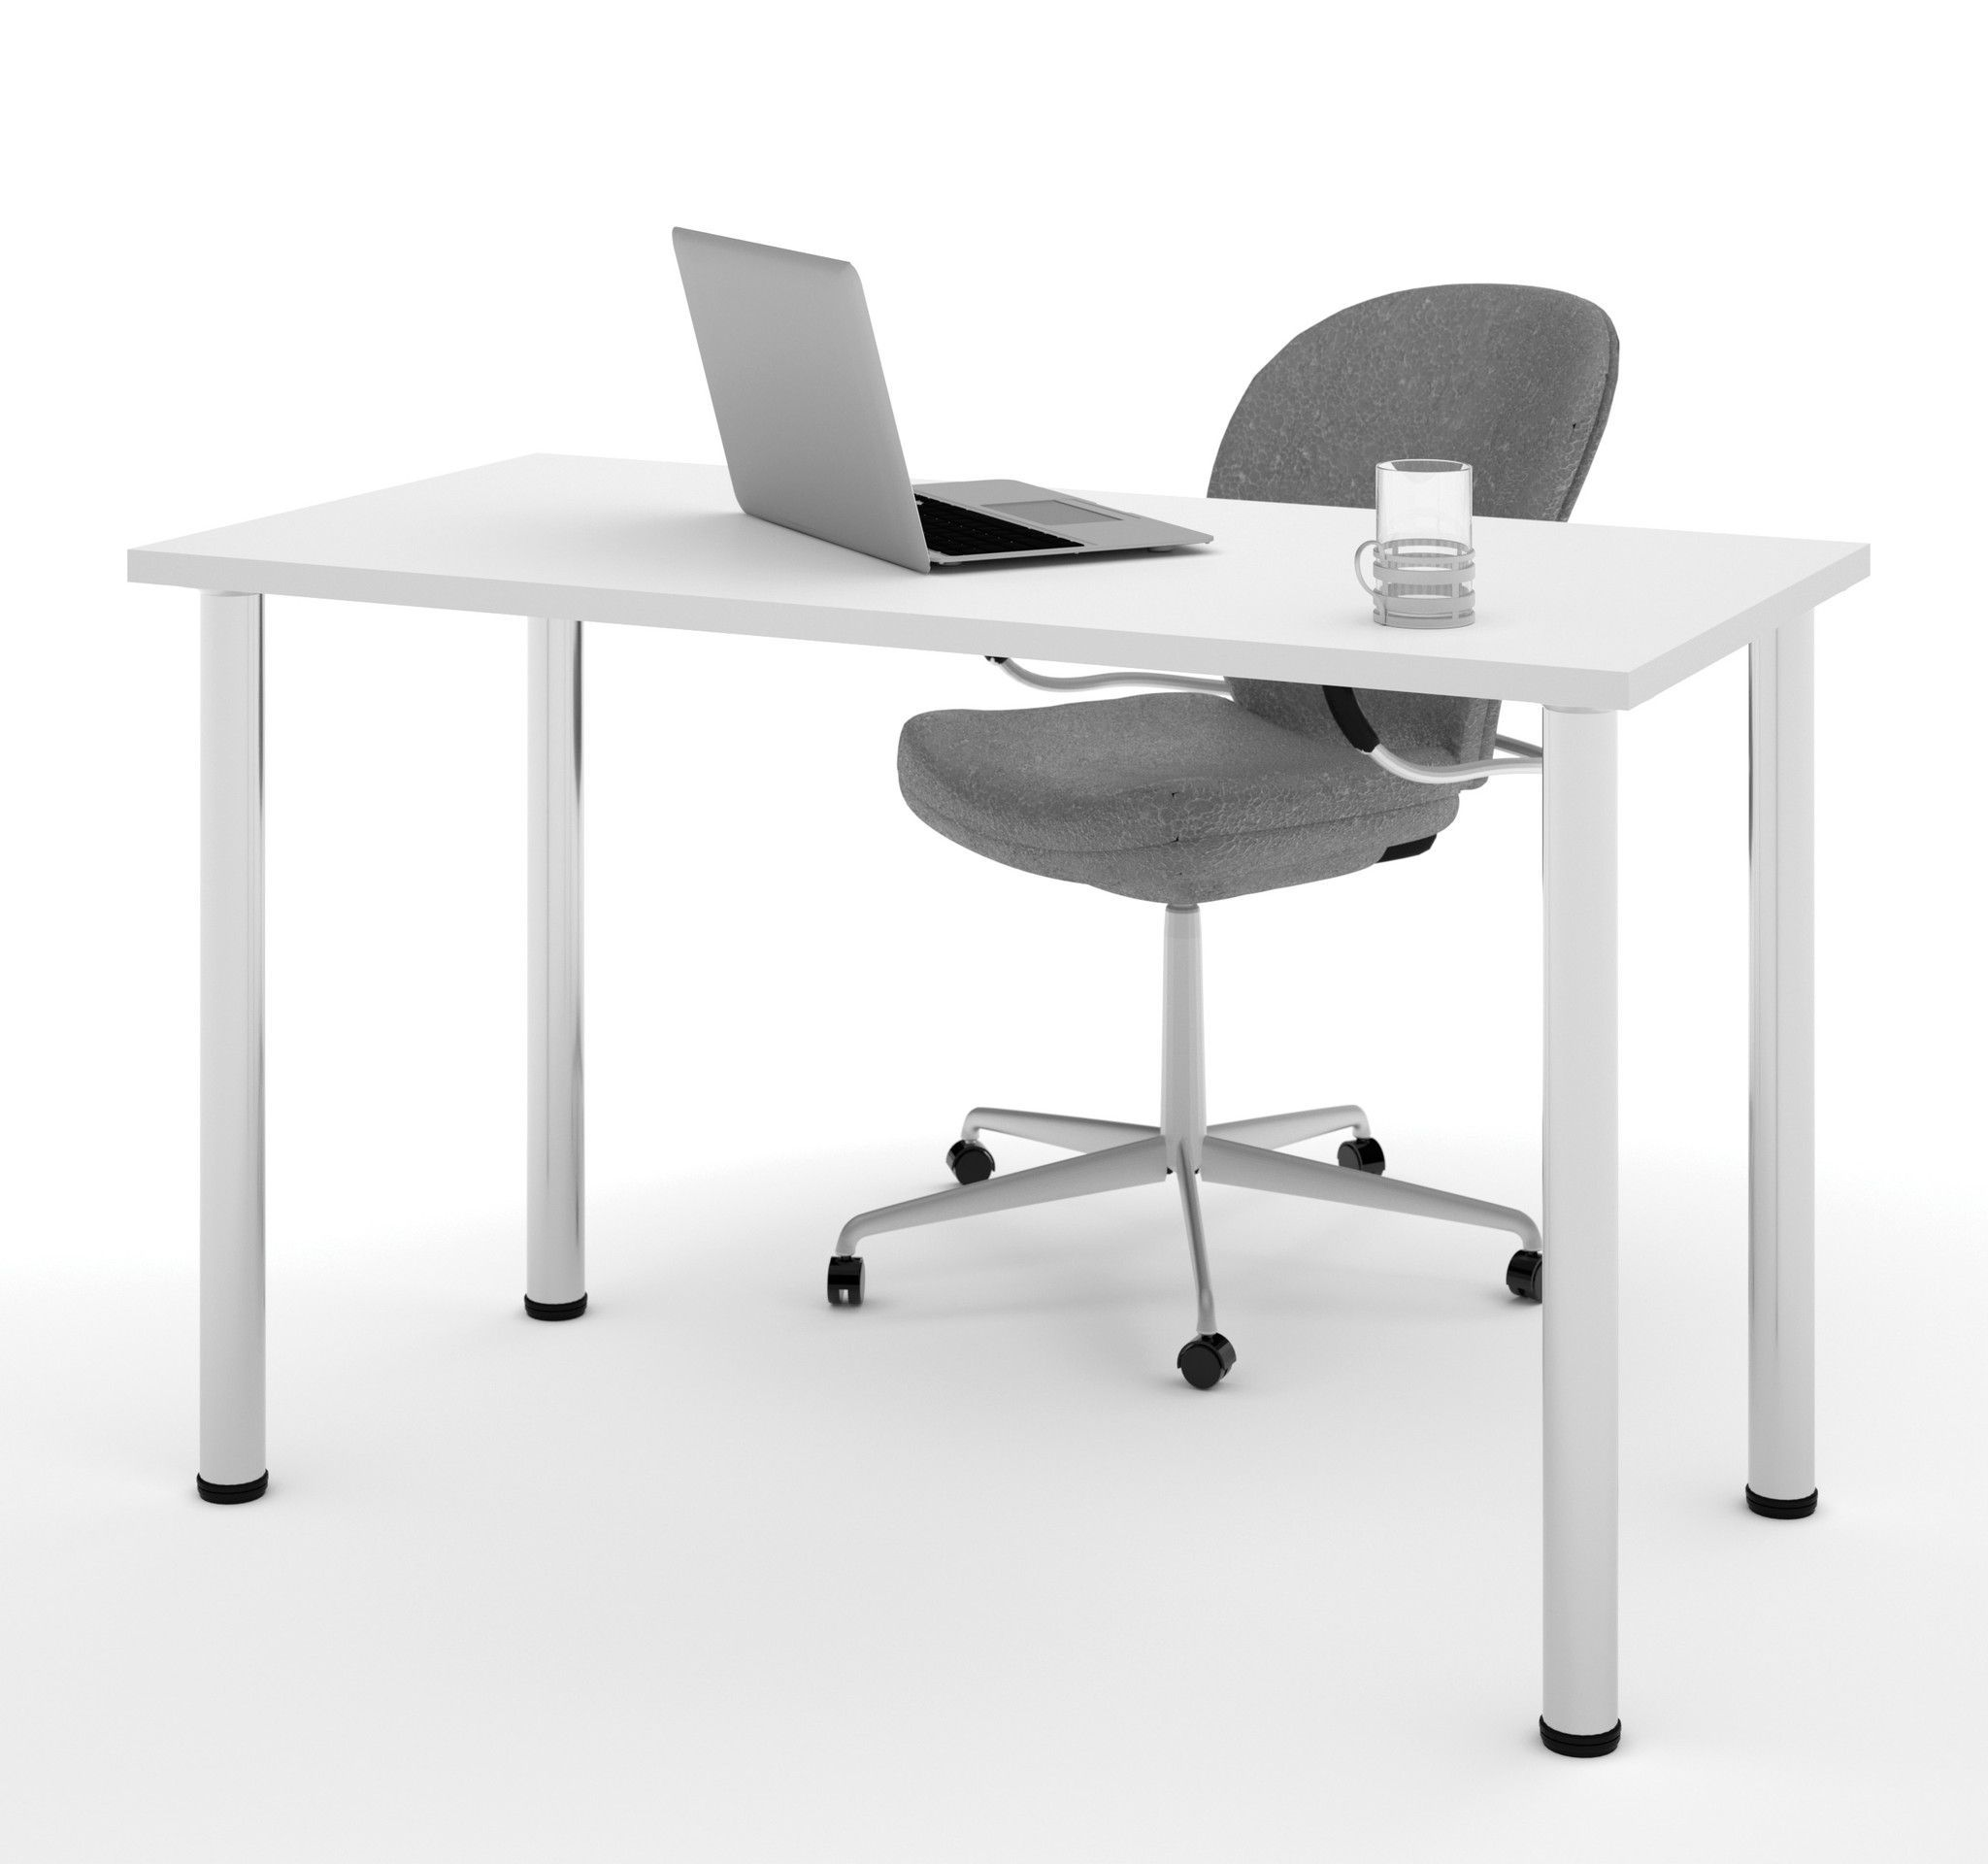 Modern Office Desk With Premium White Top Silver Legs Office - 48 inch round office table